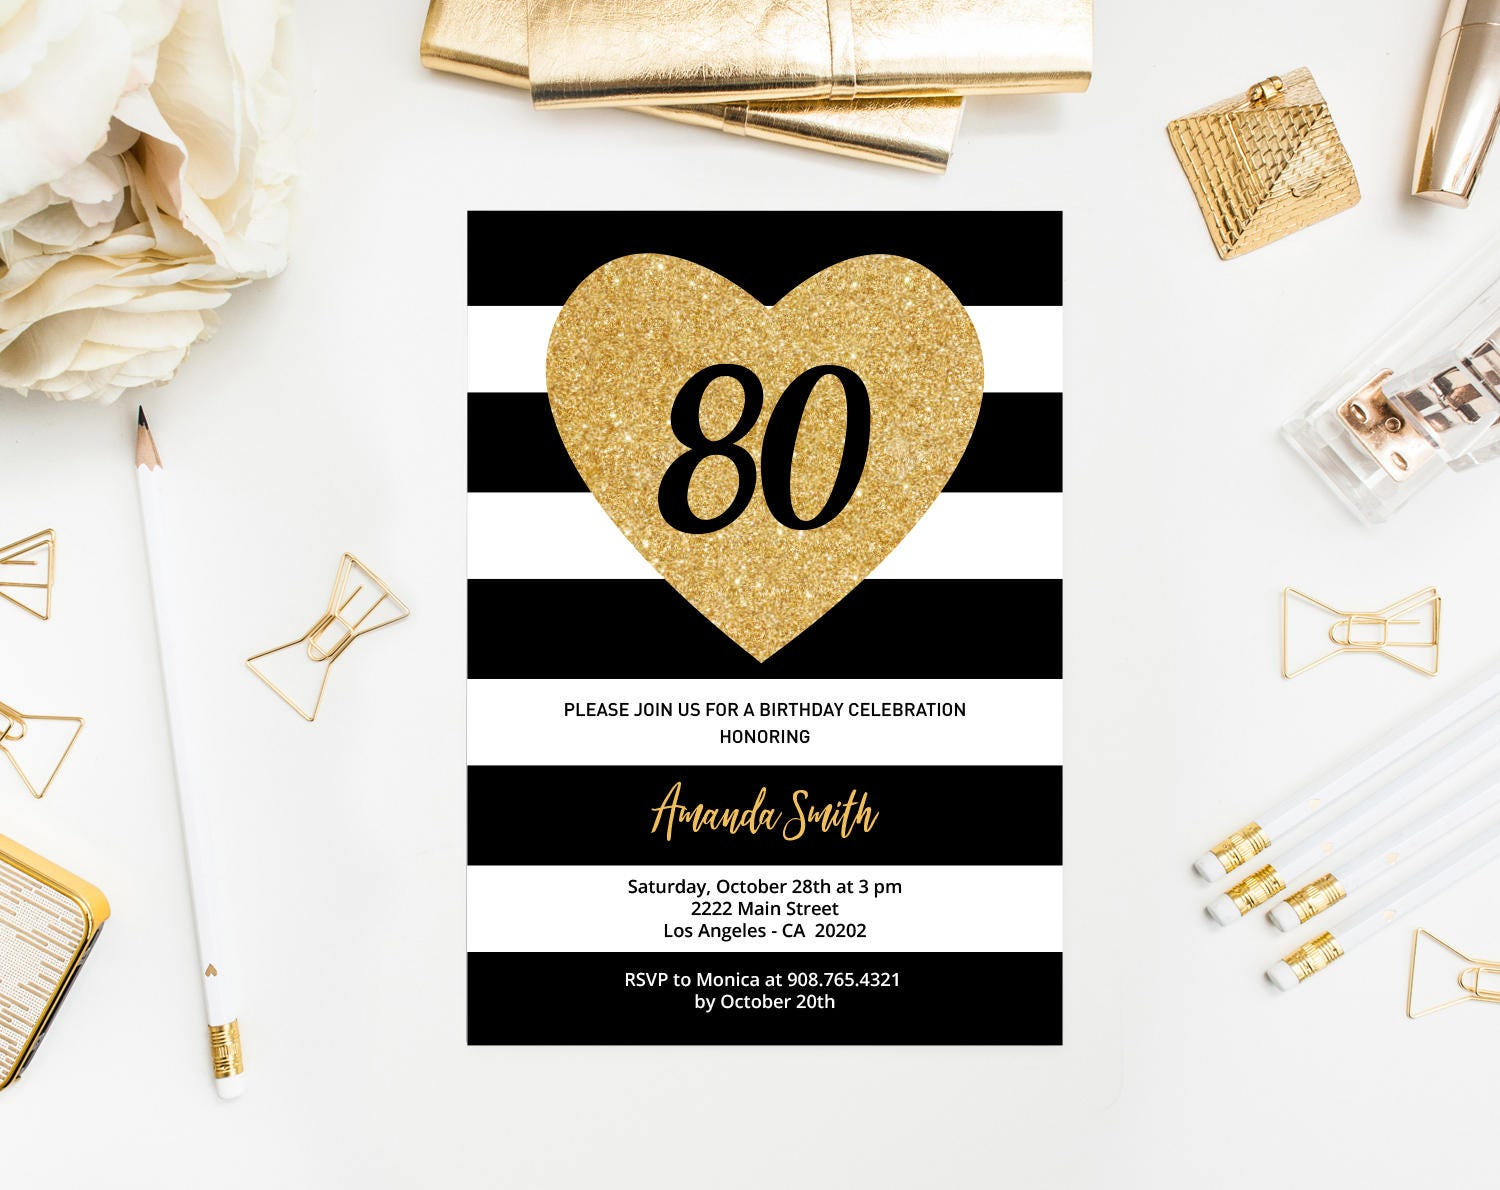 80th Birthday Invitation Template Black And White Stripes Gold Glitter Heart 80 Party Invite Printable INSTANT DOWNLOAD Editable